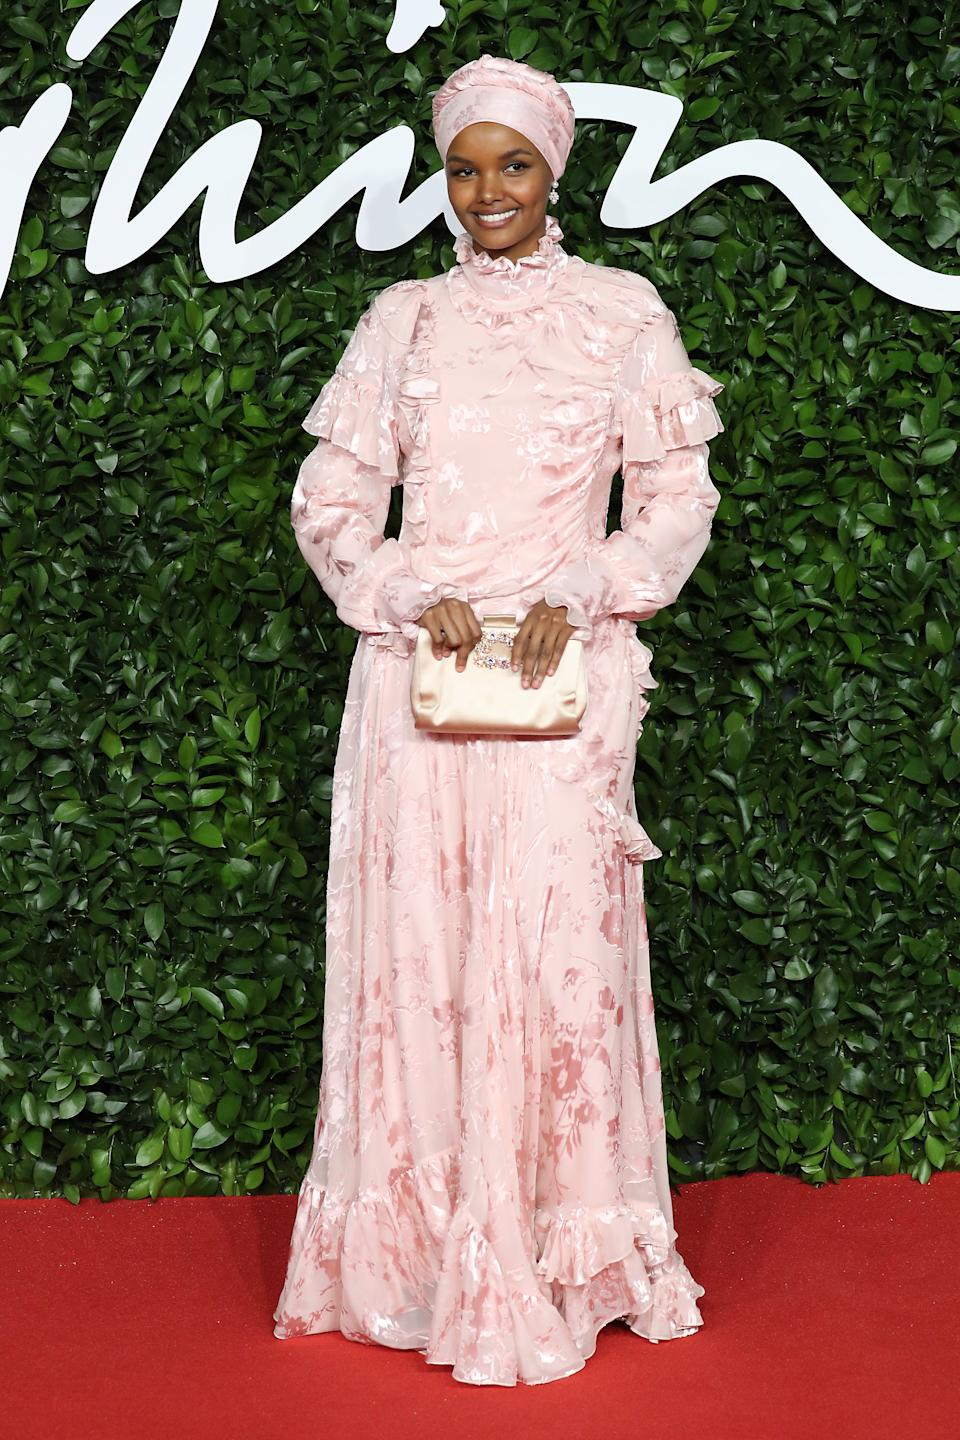 <p>Halima Aden at the British Fashion Awards</p>FilmMagic